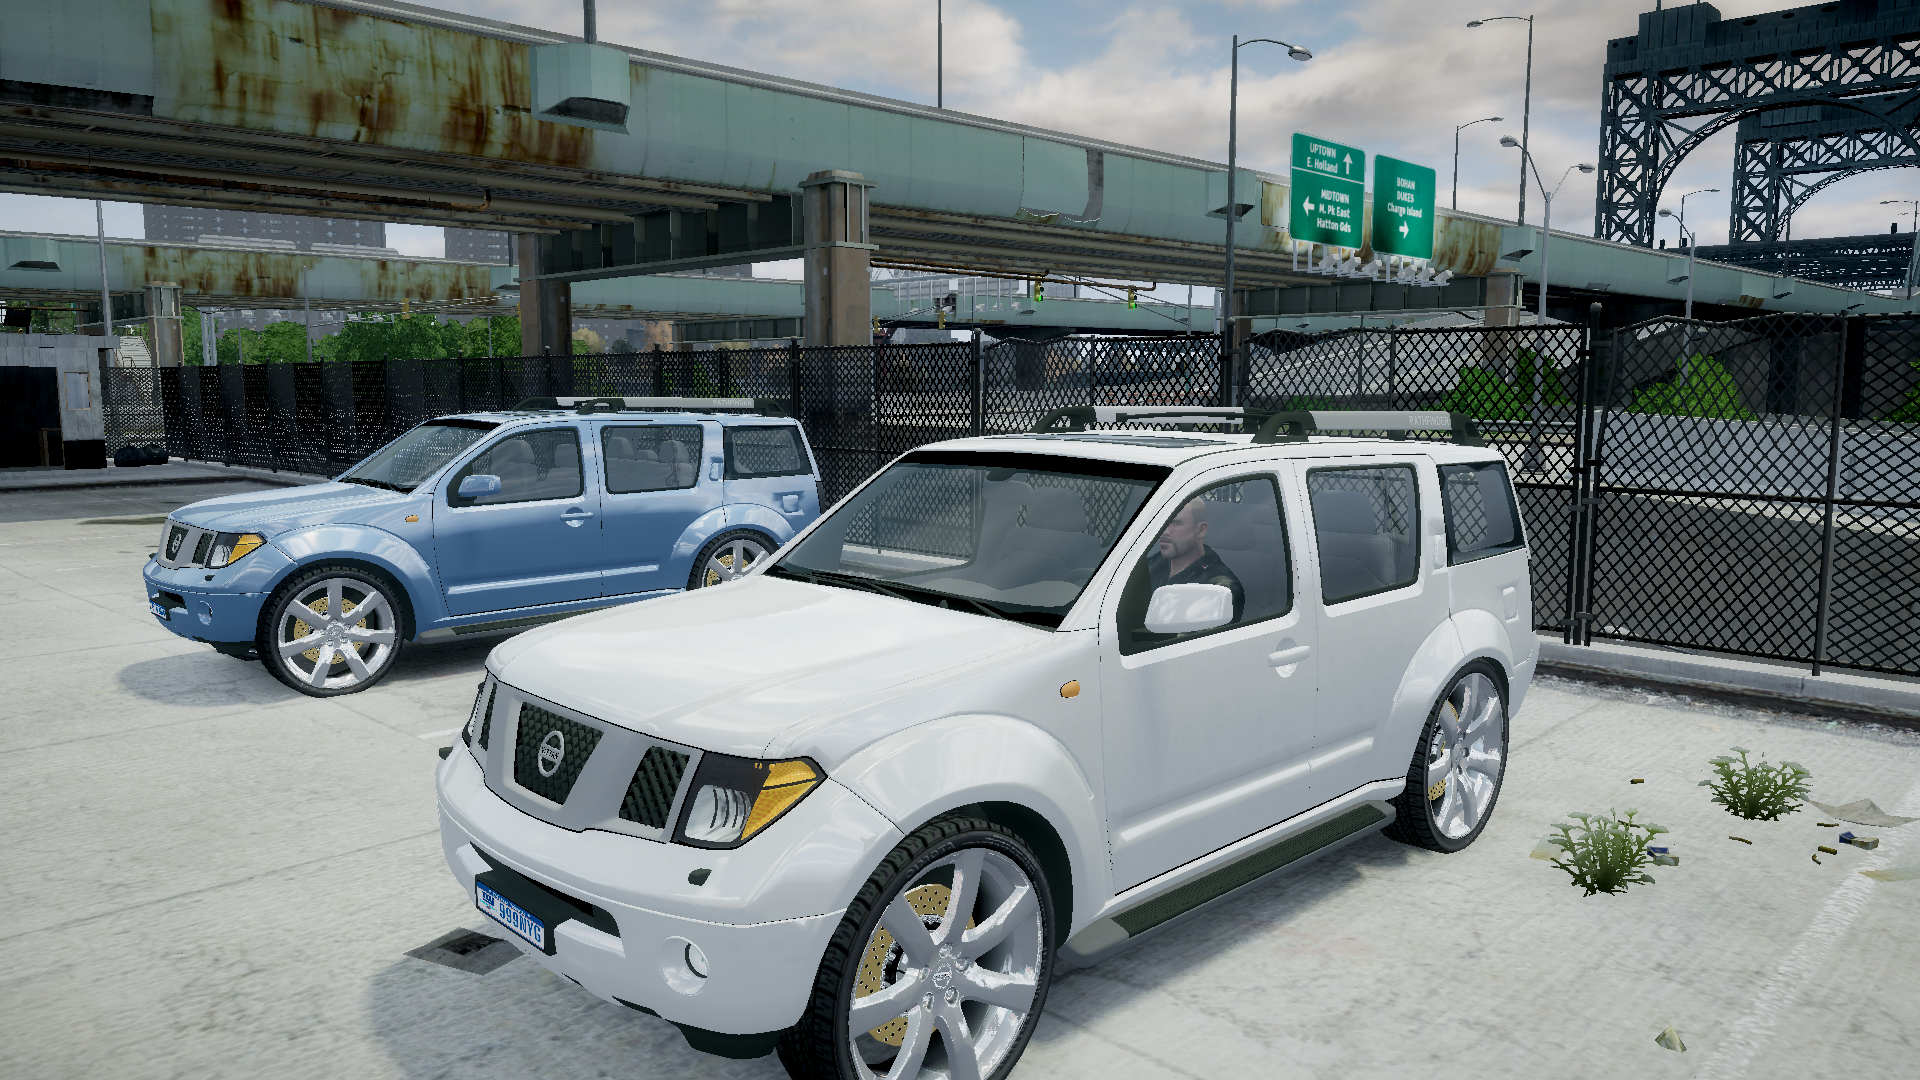 us images wide pixel hd wallpapers pathfinder nissan car wallpaper and